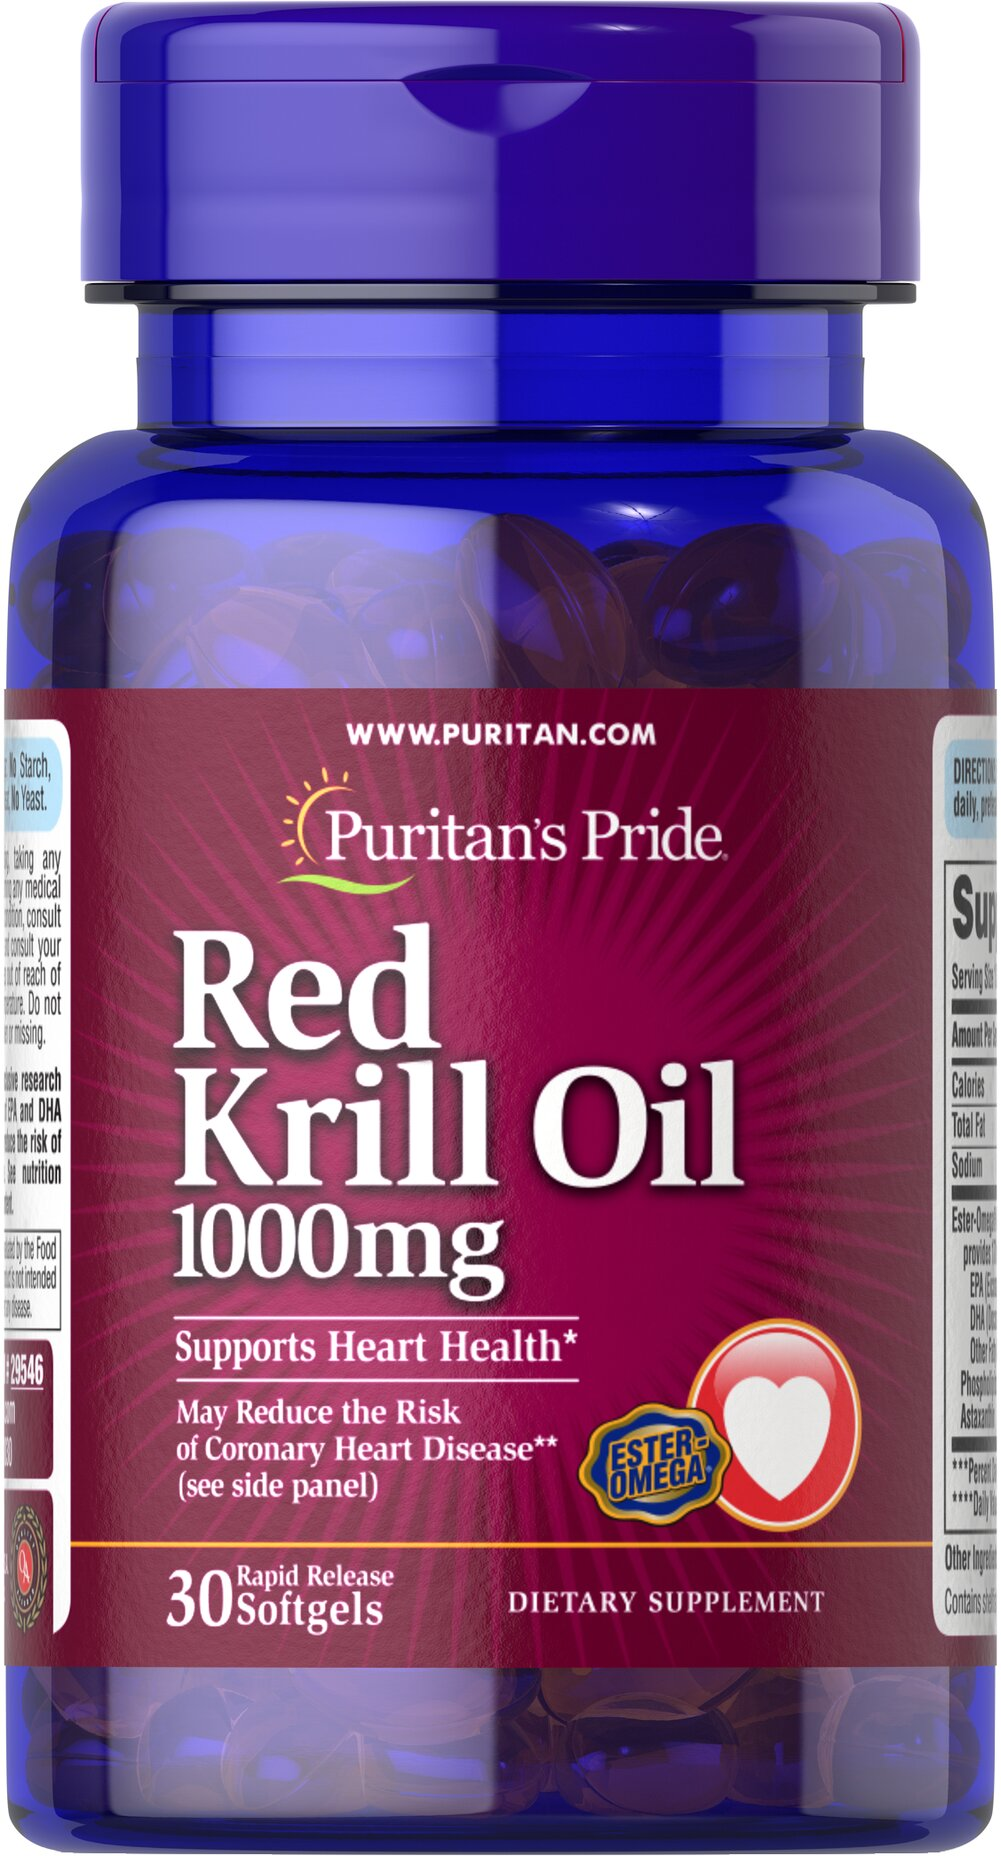 "Red Krill Oil 1000 mg <p><strong>With Naturally Occurring Astaxanthin</strong></p><p>Harvested from the icy waters of Antarctica.</p><p>May reduce the risk of coronary heart disease◊</p><p>Supports a healthy heart**</p><p>Provides you with Omega-3 fatty acids — the ""good"" fats important for cellular and metabolic health**</p><p>Rapid release softgels facilitate quick absorption</p> 30 Softgels 1000 mg $25.99"